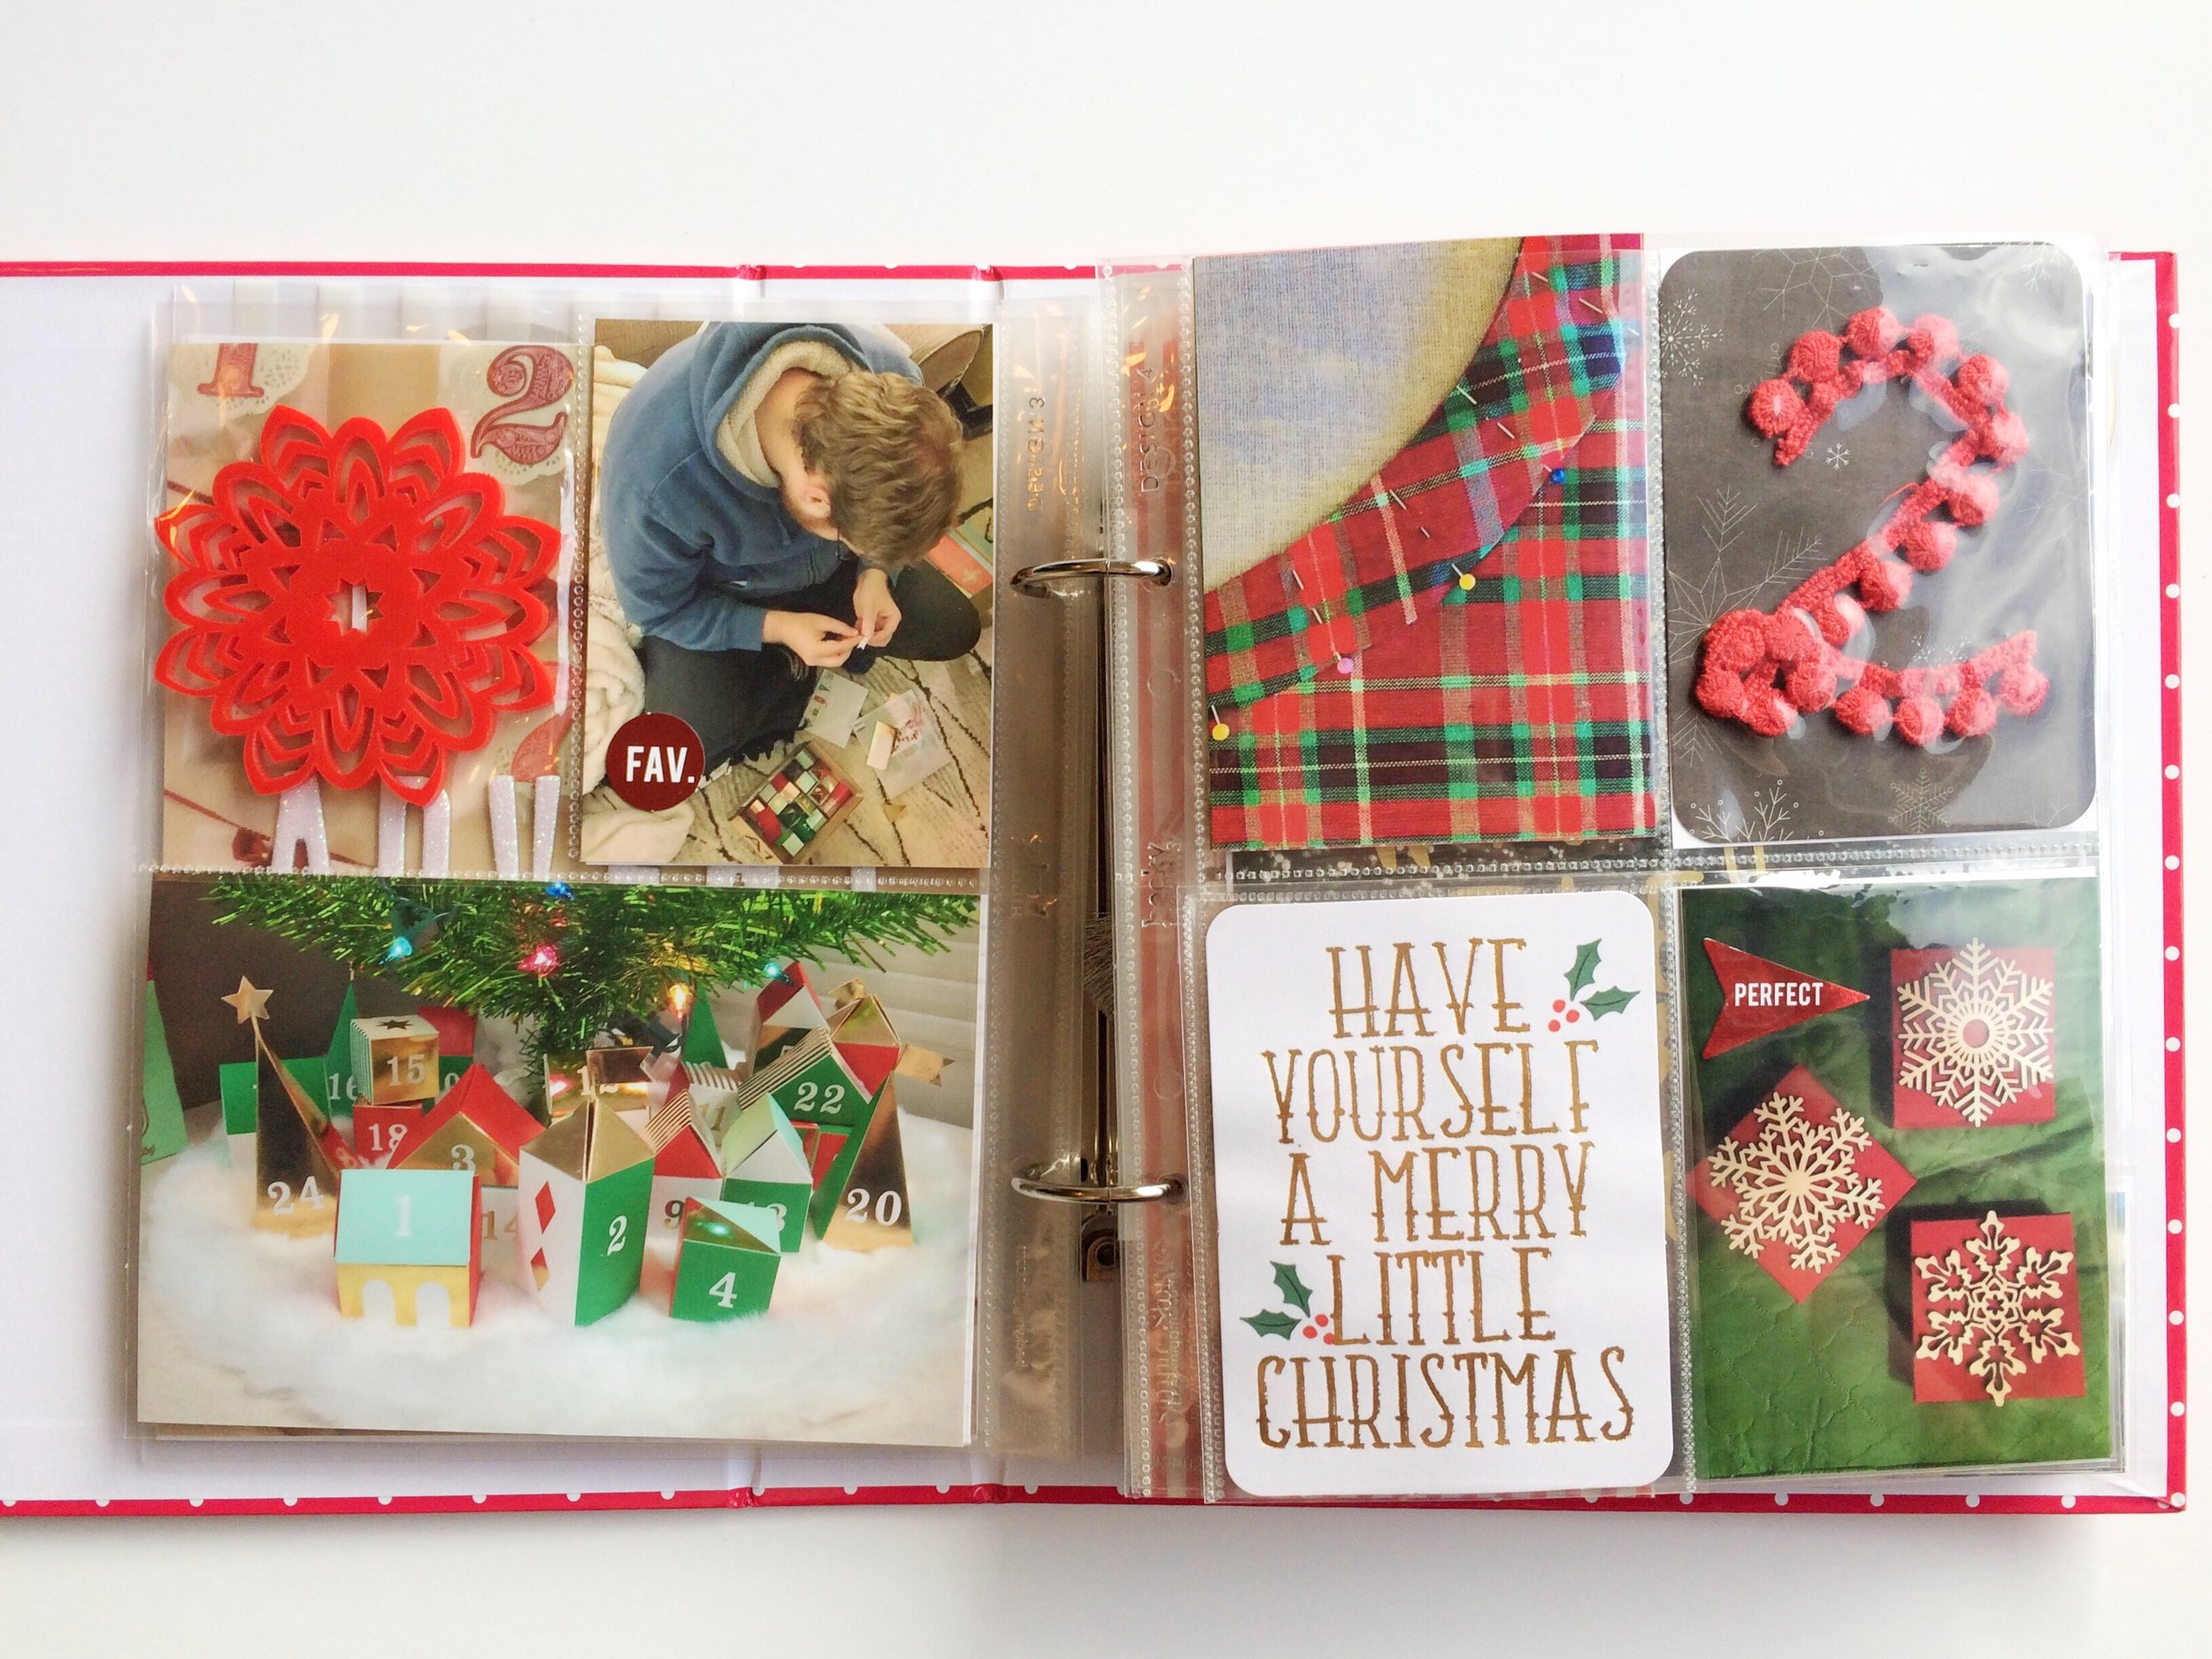 """For day 2 I chose to document the story of making gifts for my mom this year instead of buying them. To break up the page I added a flip up pocket to conceal the journaling under the """"Have Yourself A Merry Little Christmas"""" 3x4."""